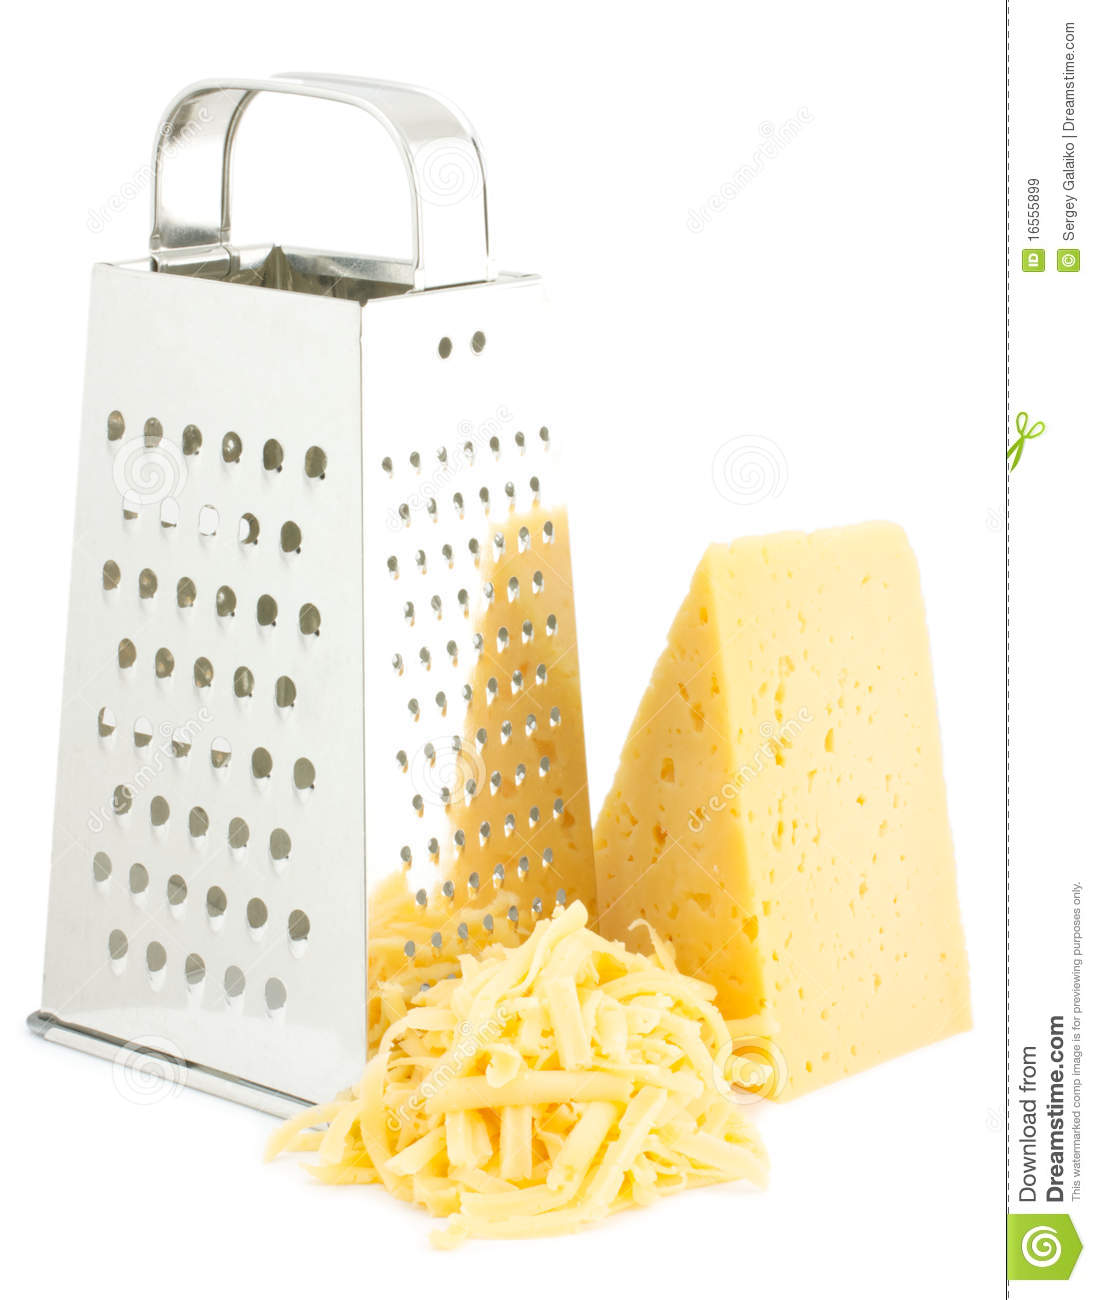 Serowy grater